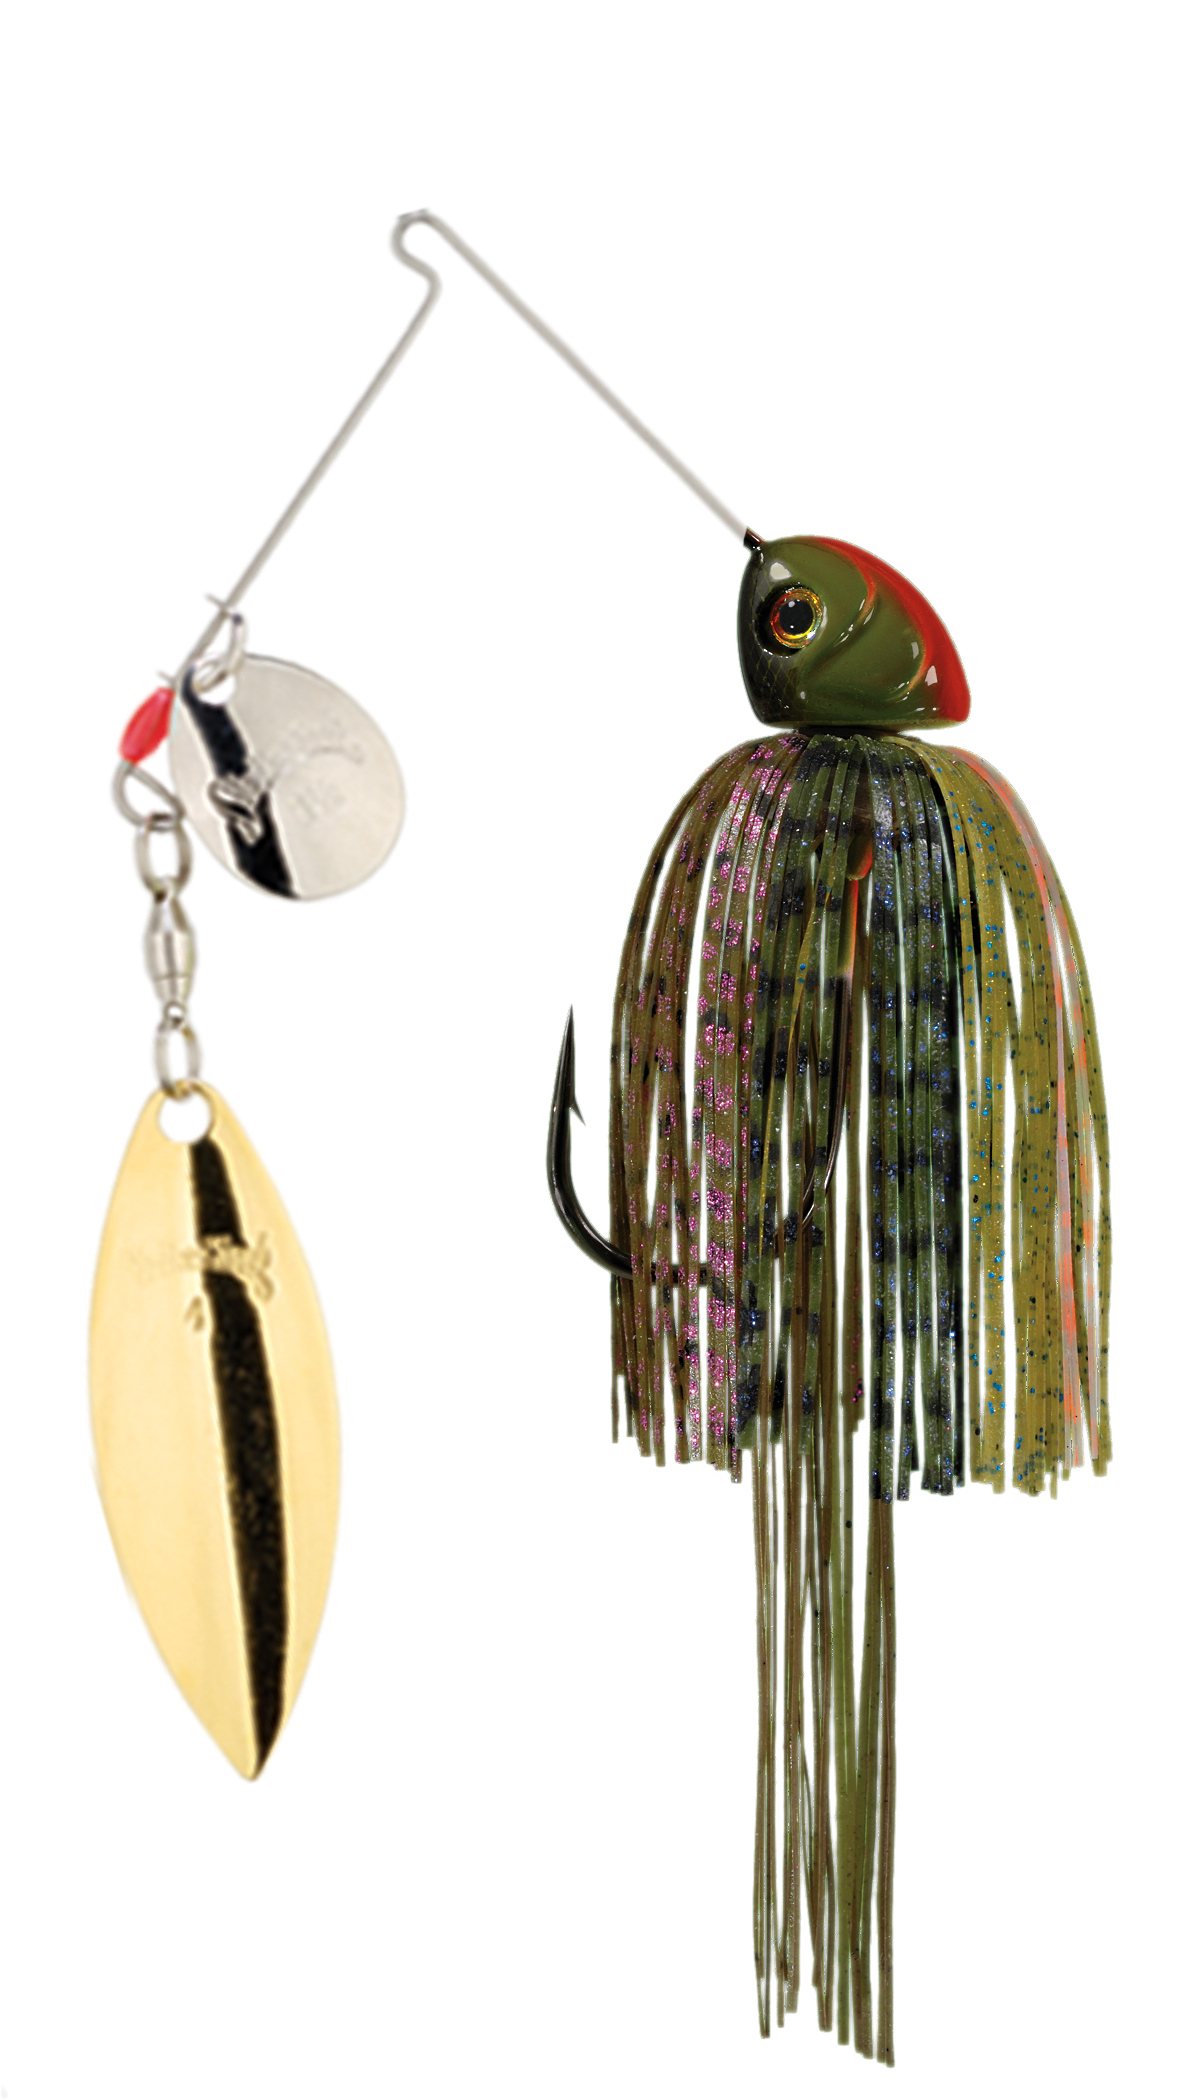 Strike King Lures – Spinnerbaits – Colorado Willow – Hack Attack Heavy Cover - 3/4oz - HAHC34CW-234SG - Bluegill